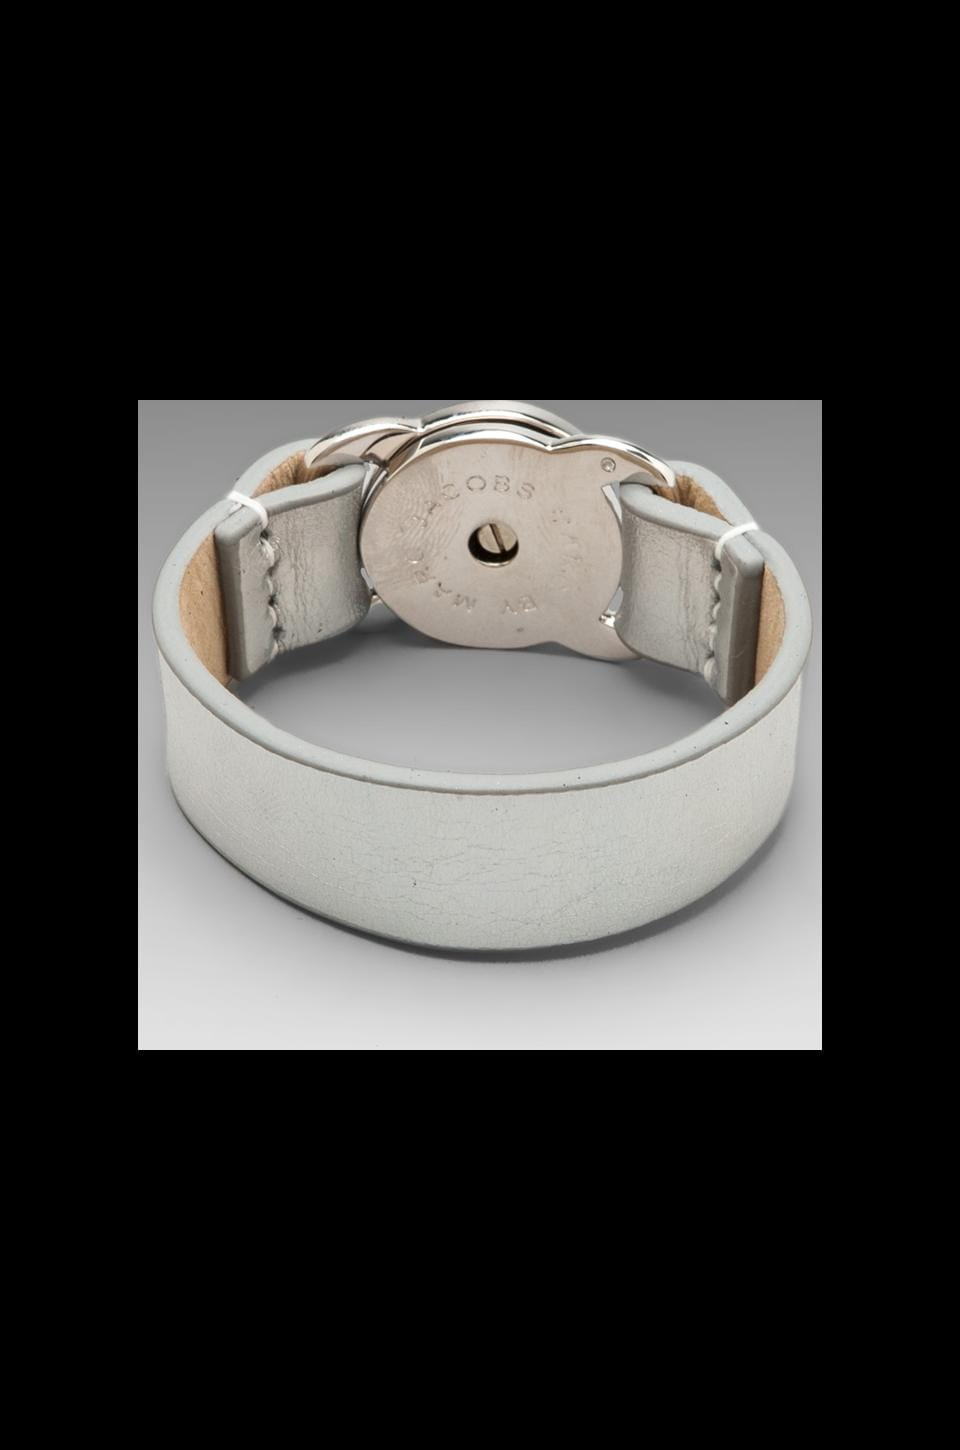 Marc by Marc Jacobs Leather Bracelets Large Turnlock Leather Bracelet in Light Holographic (Argento)